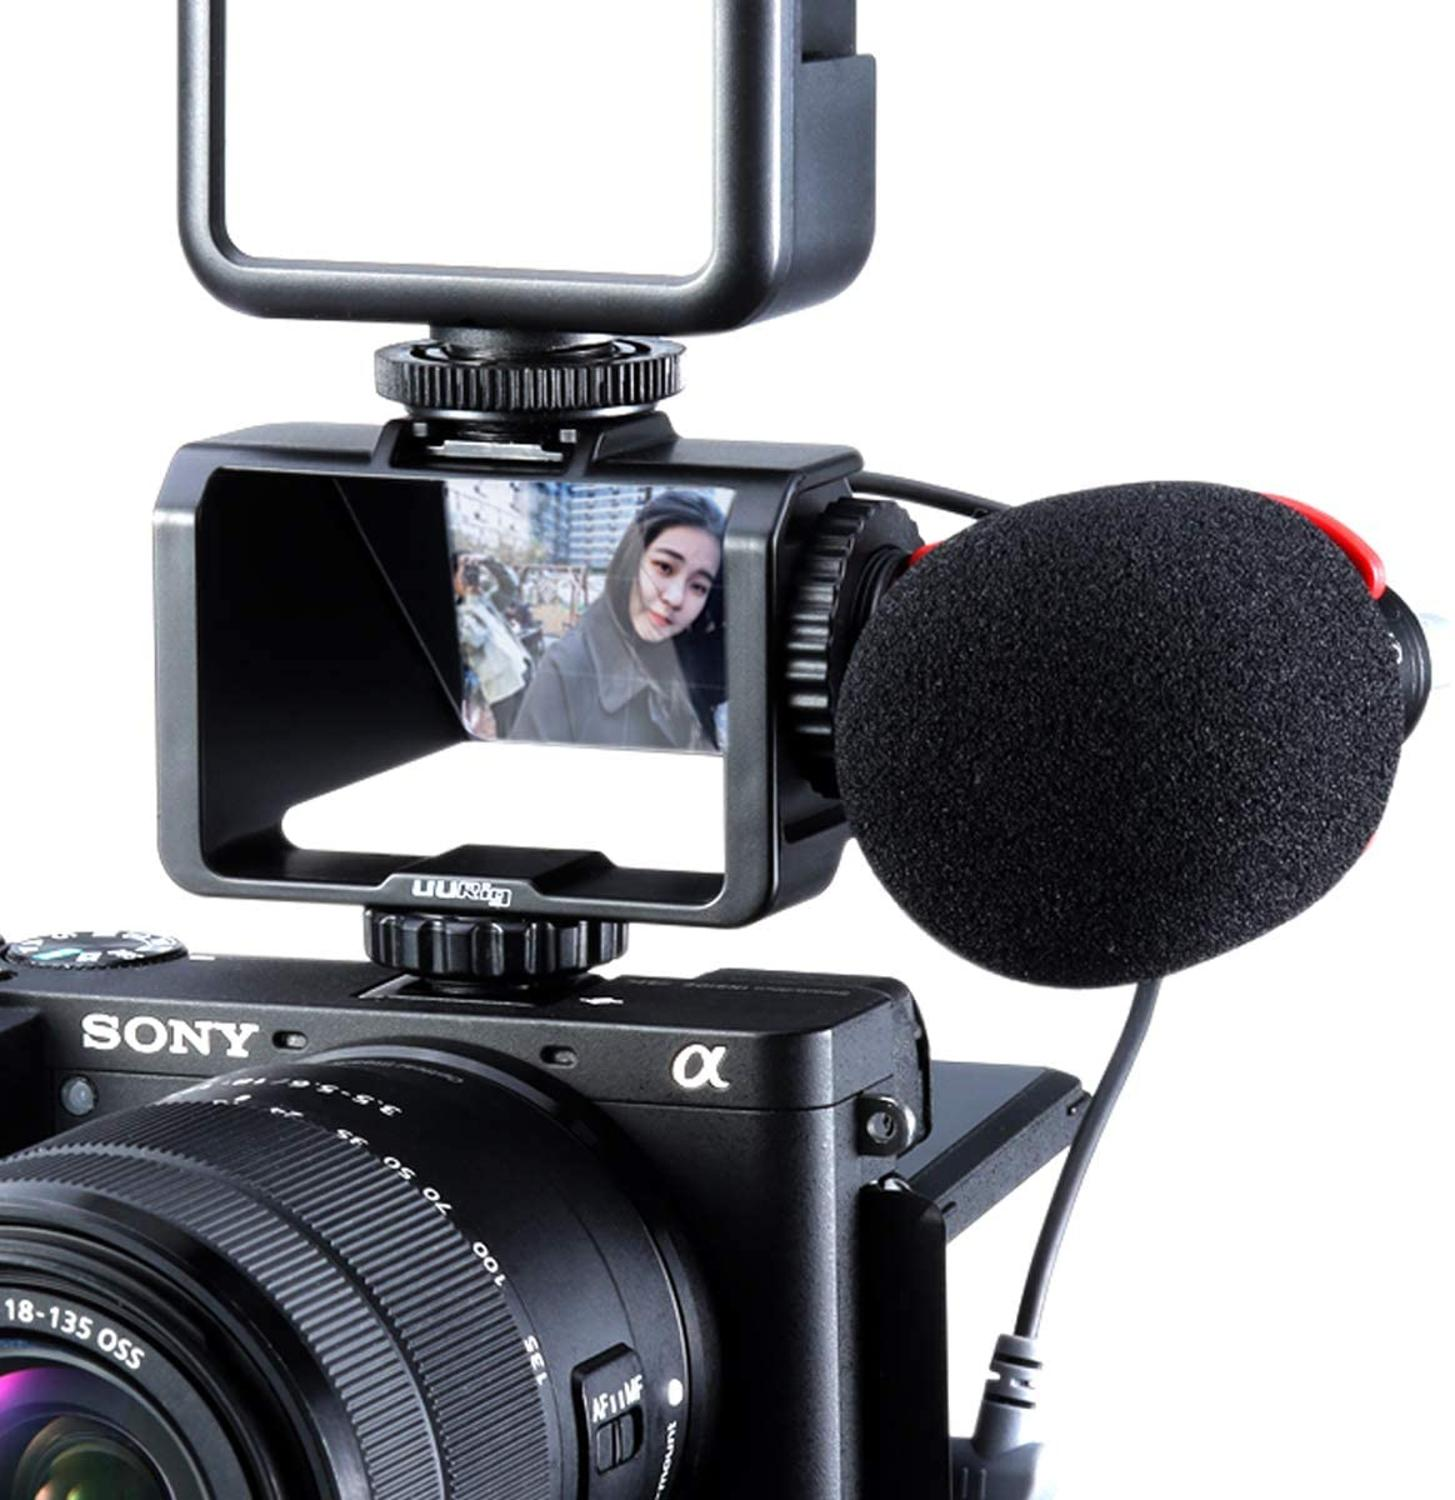 UURig Camera Vlog Selfie Flip Screen Bracket For Mirrorless Camera Periscope Solution For Sony A6000 A6300 A6500 A72 A73 A7R3